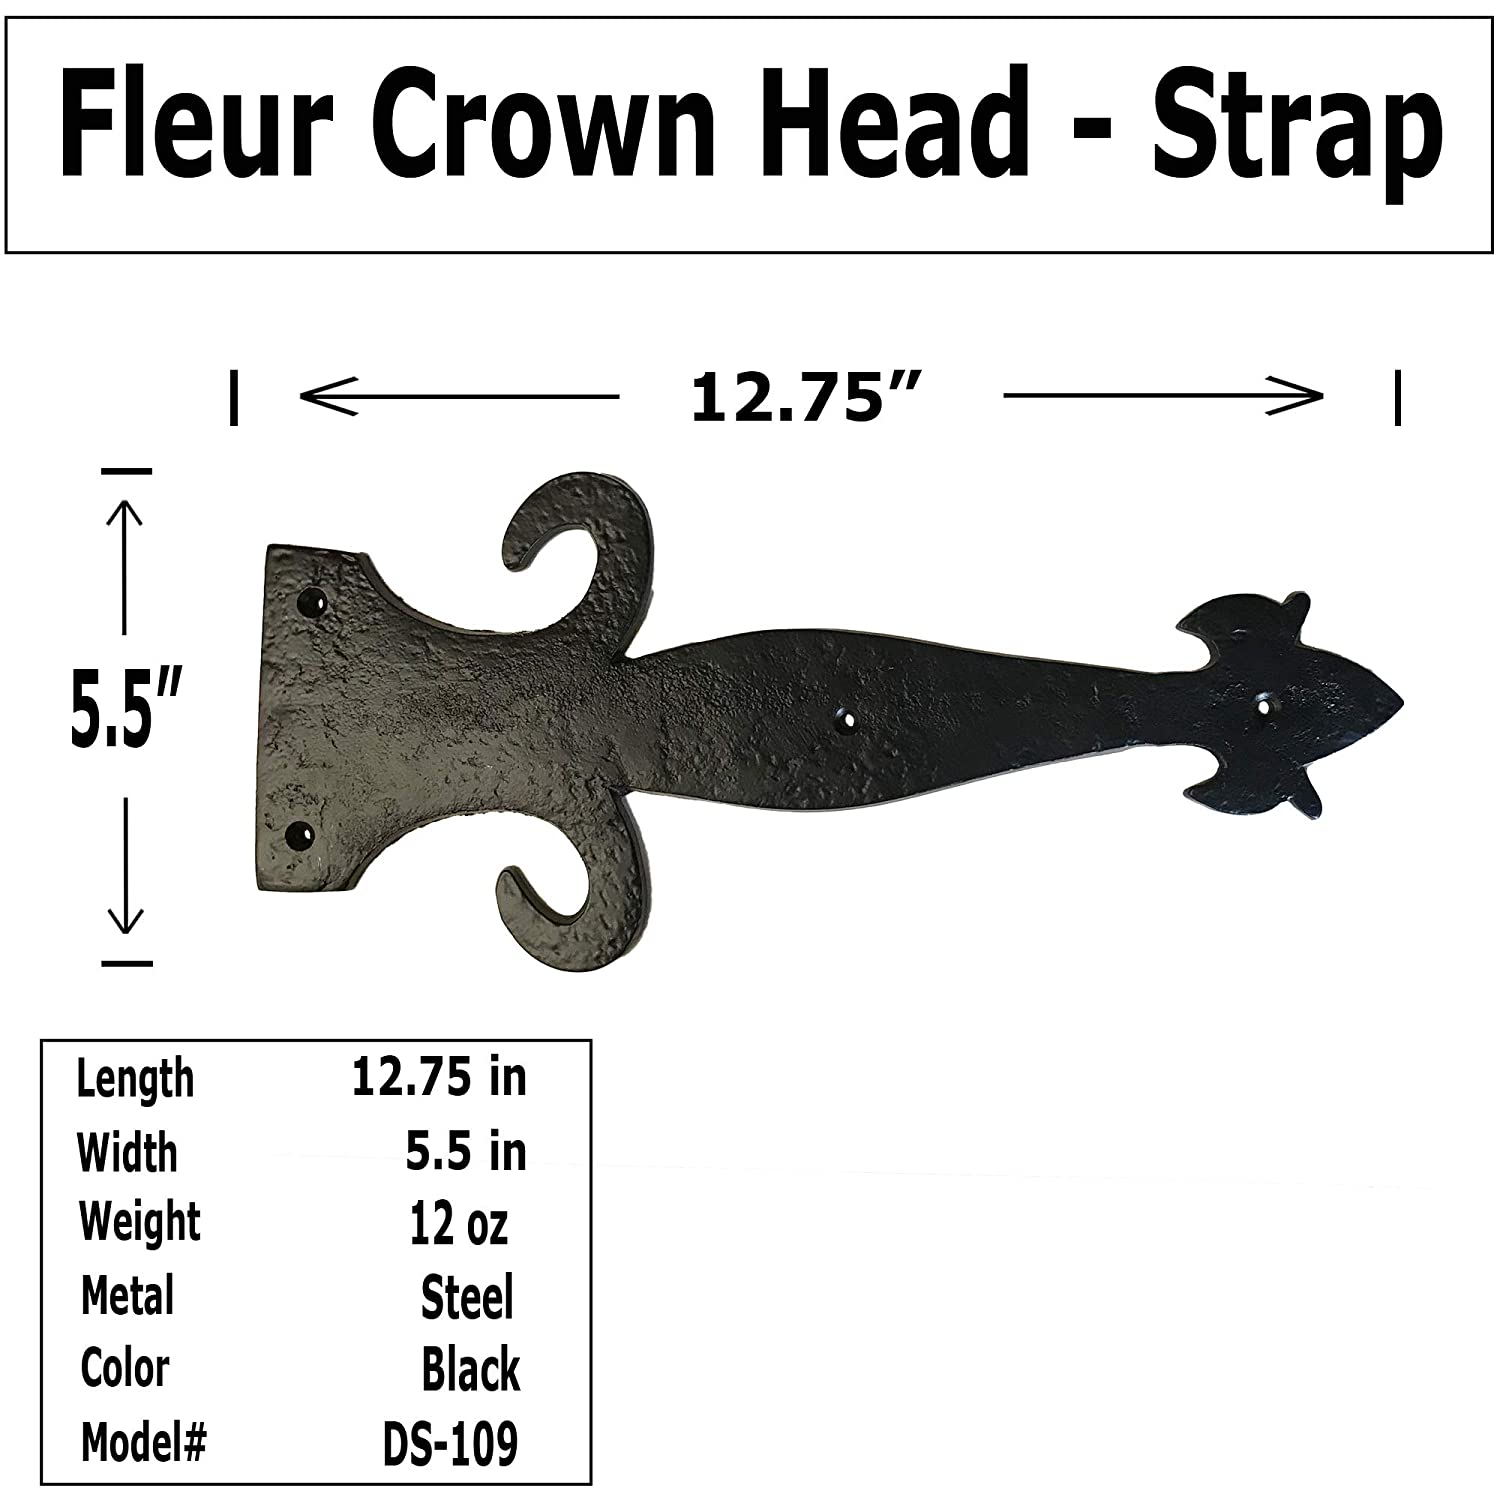 - DS-109 Fleur di lis Crown Head Decorative Iron Strap Antique Style Iron Strap for Doors 2 12.75 -DS-109 cabinets barn Door Straps Gates